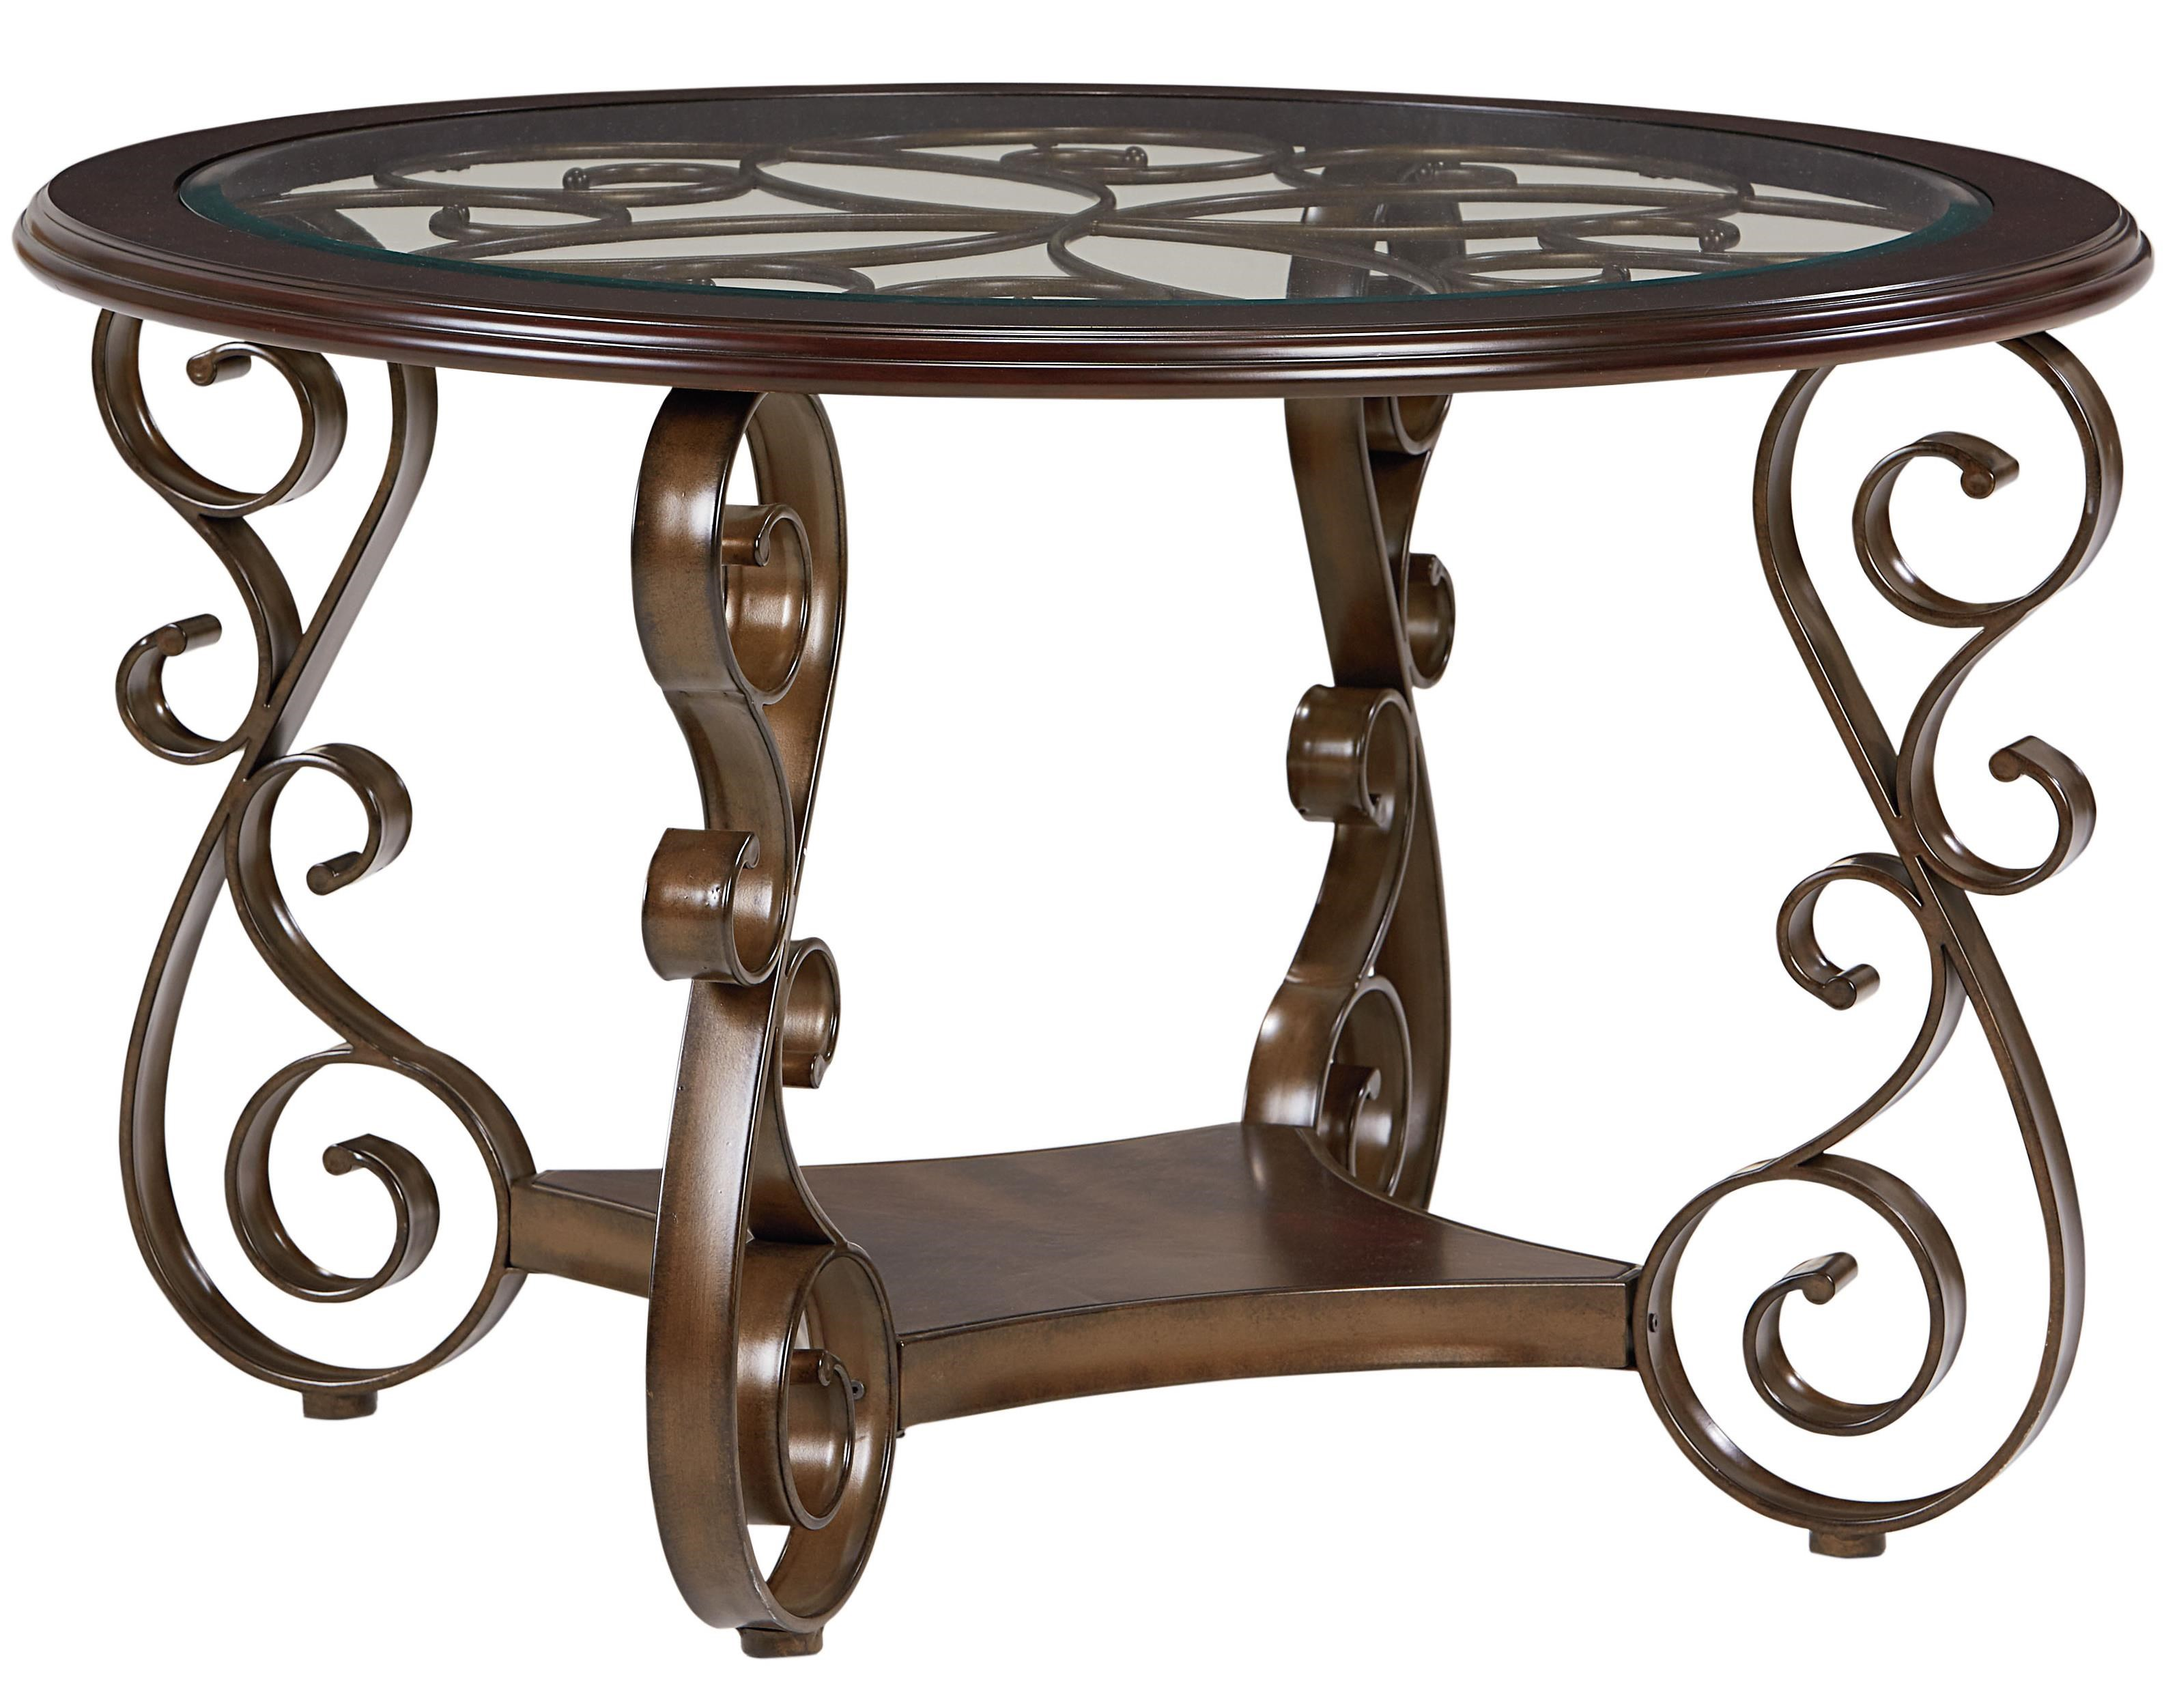 Standard Furniture Bombay Round Dining Table With Metal Scroll Pattern